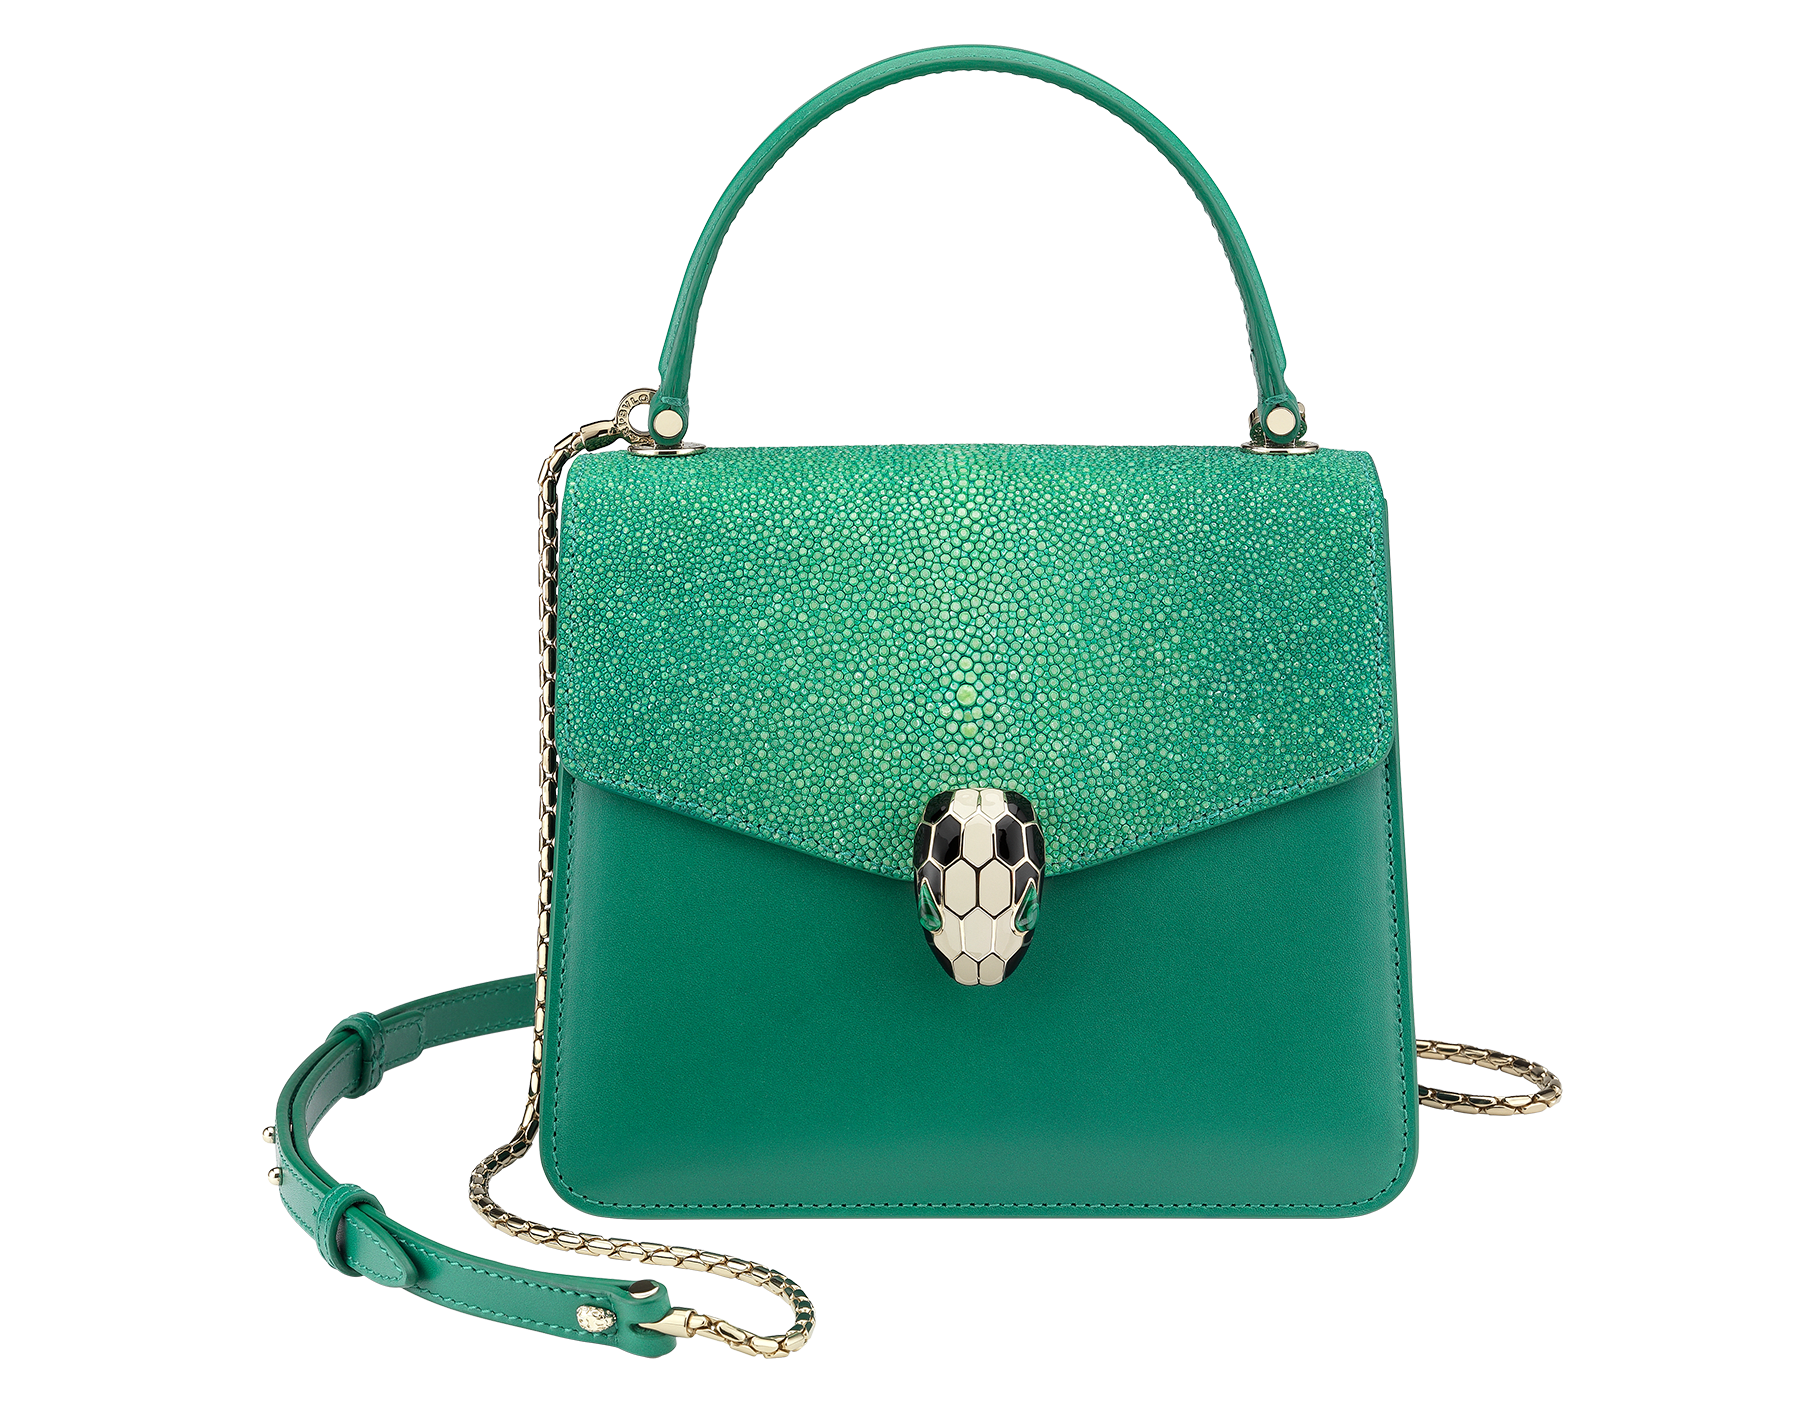 Flap cover bag Serpenti Forever in emerald green galuchat skin and emerald green calf leather. 282373 image 1